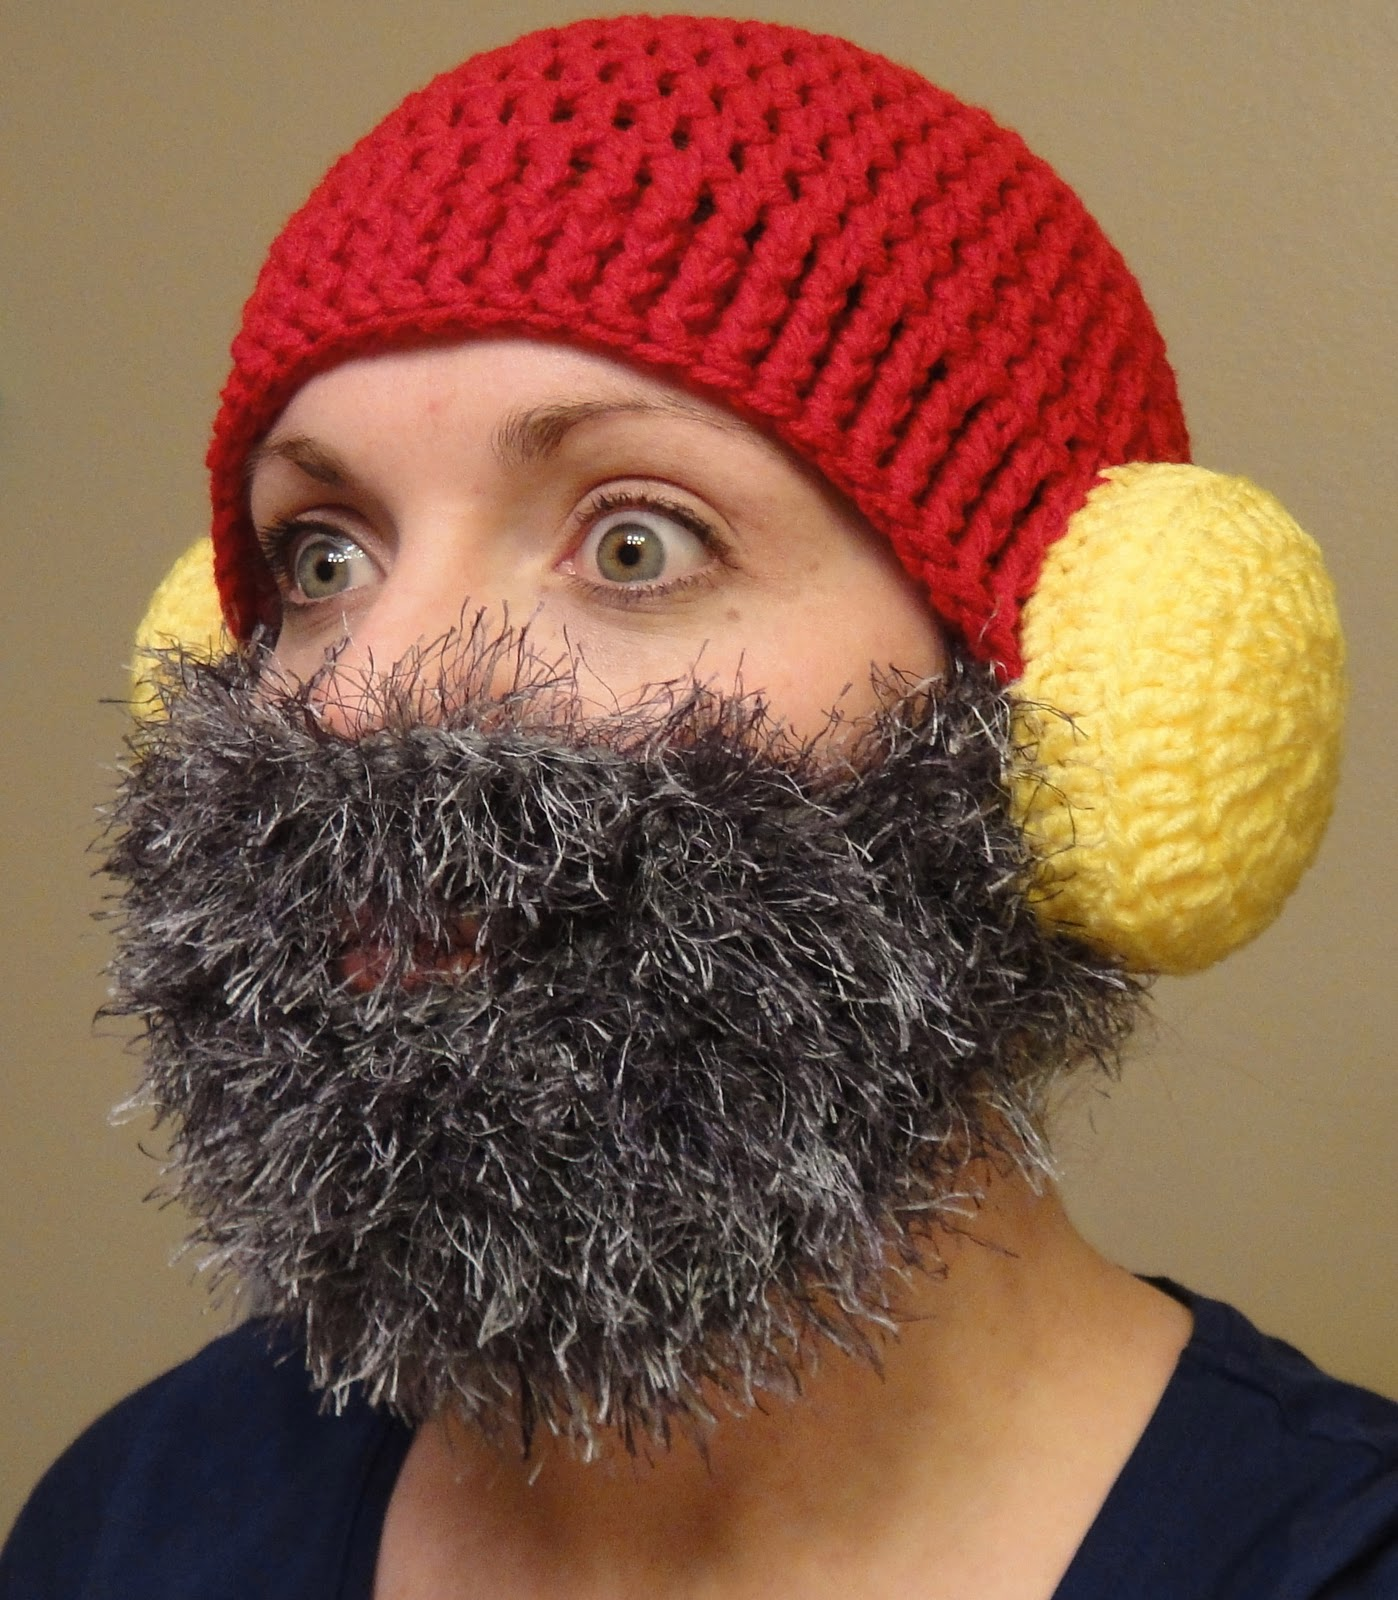 Beanie Hat With Beard Crochet Pattern Free : Crochet Beard Beanie Pattern Free - Viewing Gallery